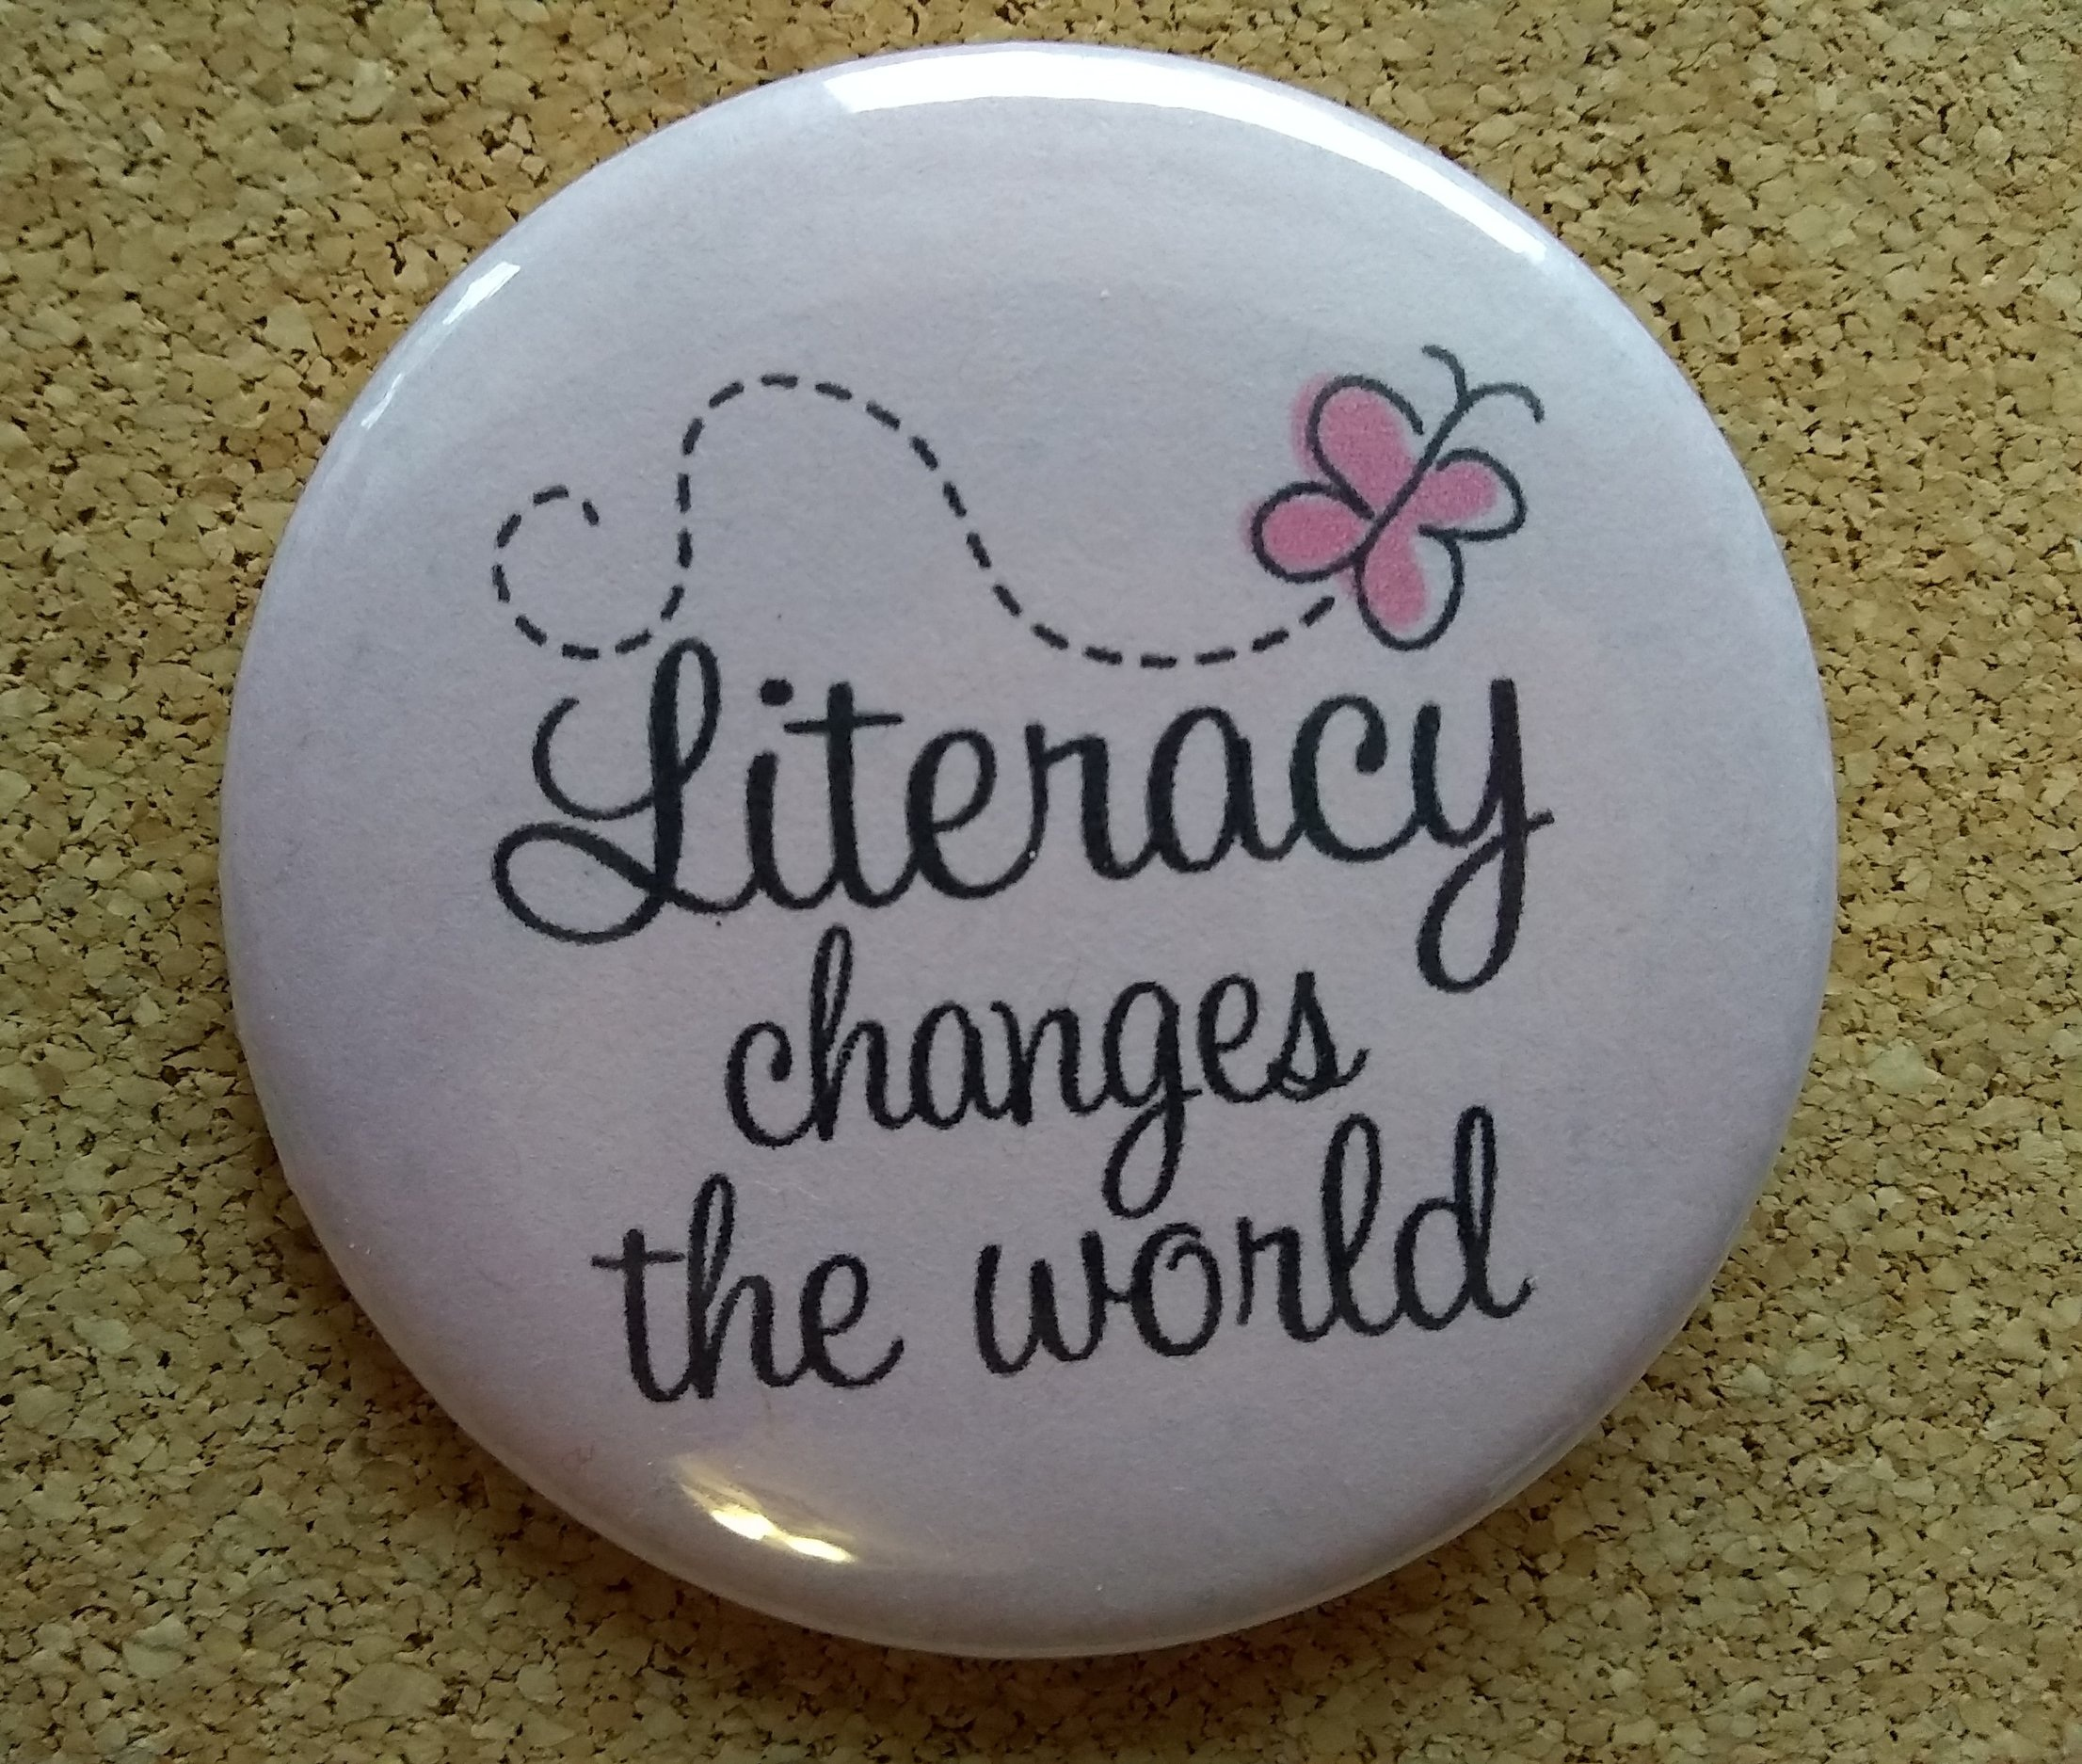 Literacy changes the world.